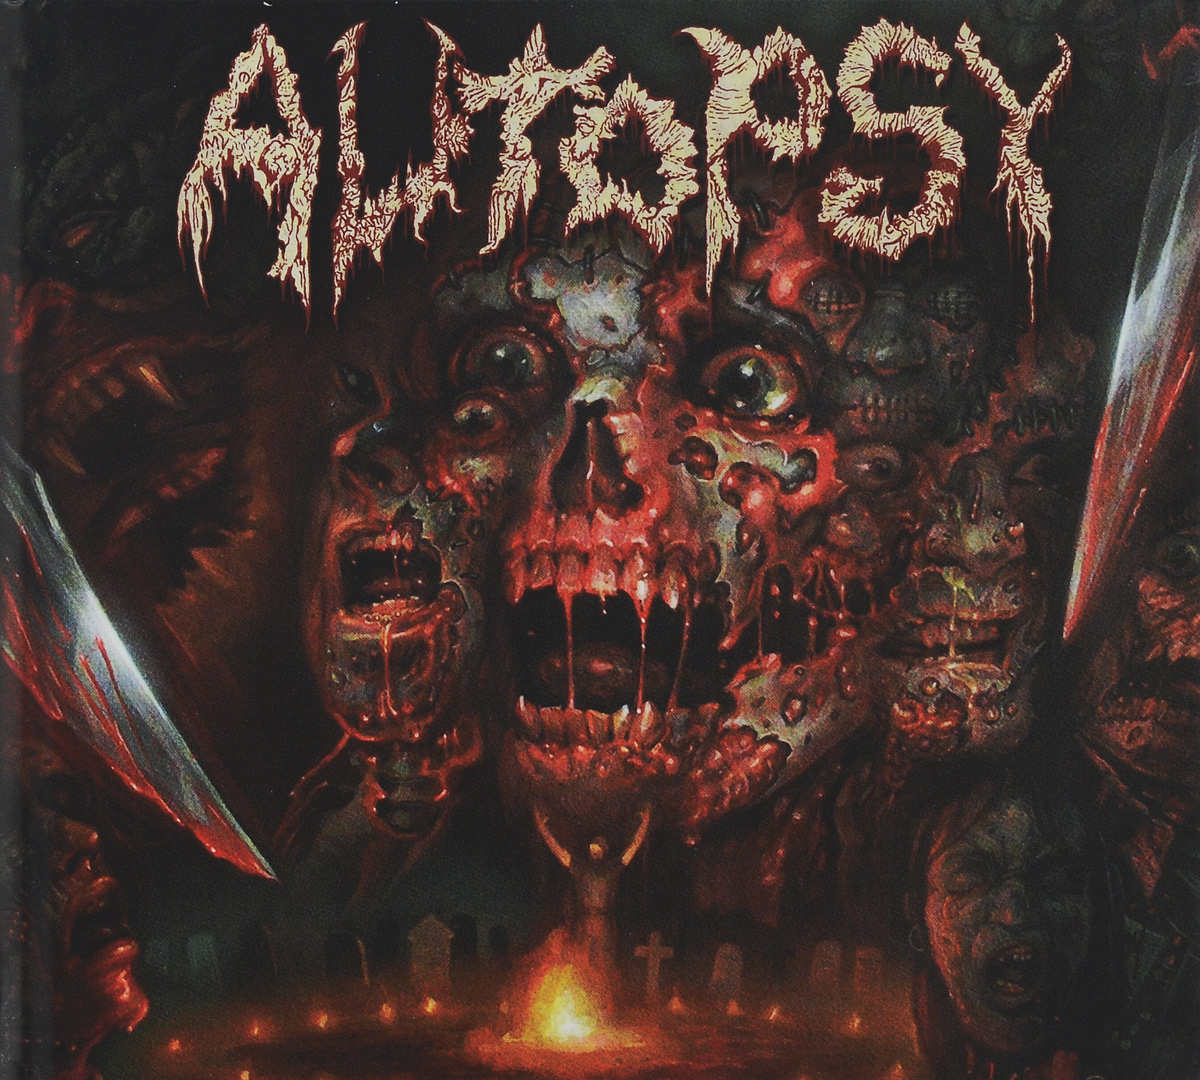 Autopsy Autopsy. The Headless Ritual autopsy autopsy tourniquets hacksaws and graves